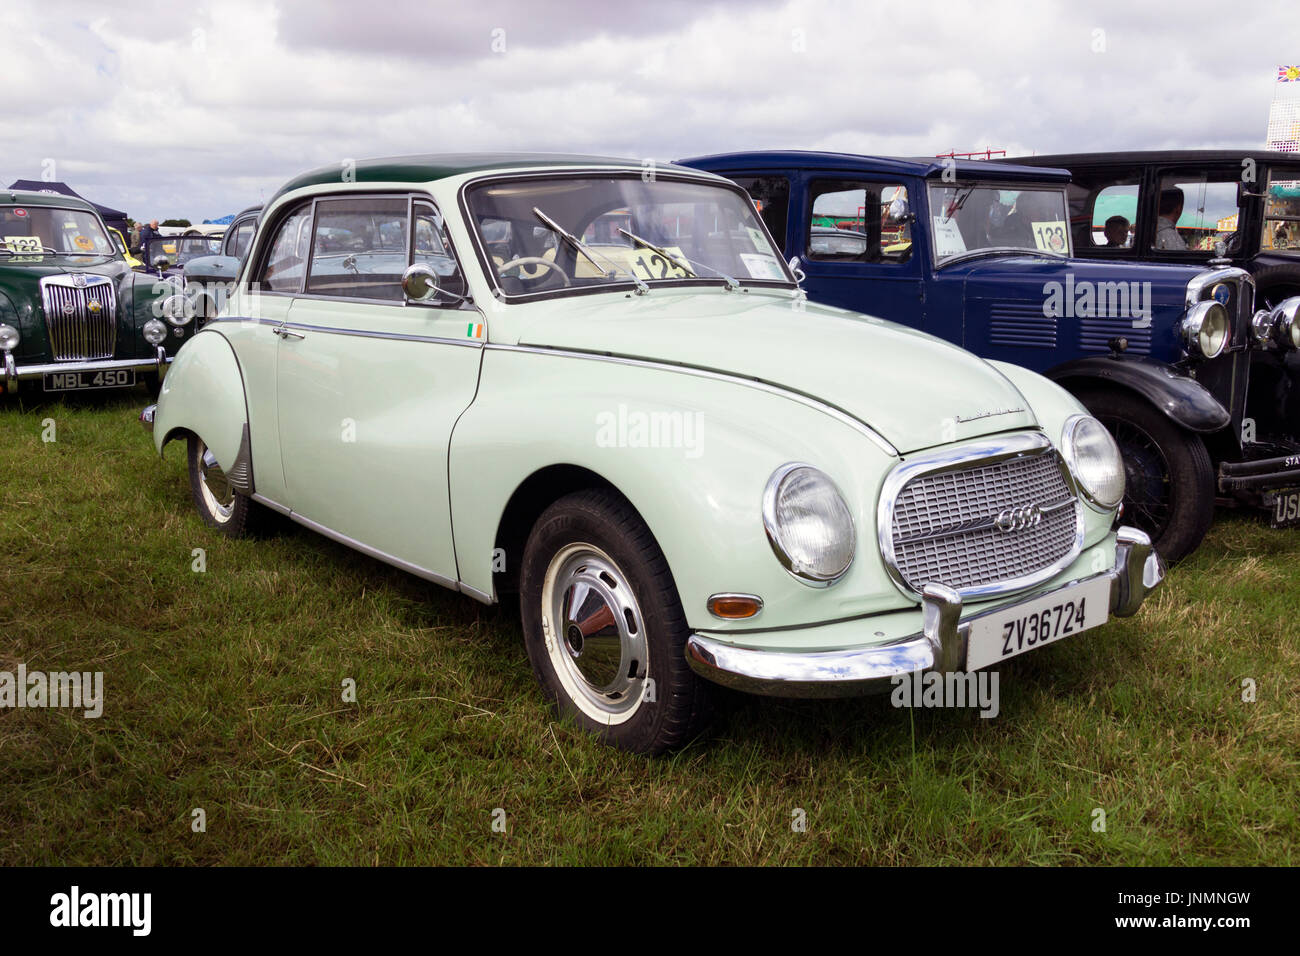 Auto Union Dkw Stock Photos Amp Auto Union Dkw Stock Images